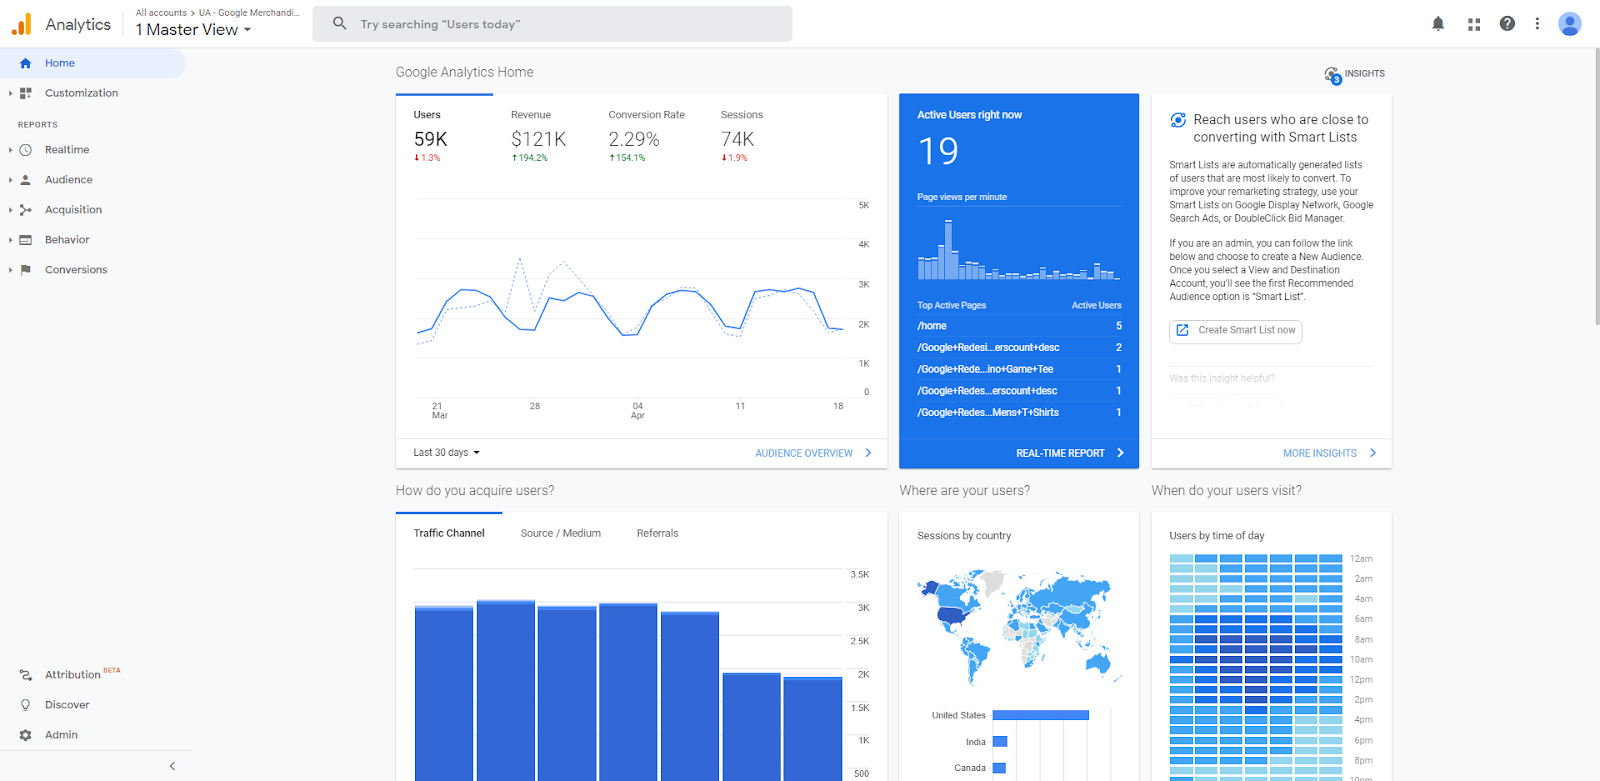 Screenshot of Sample Google Analytics Home Screen